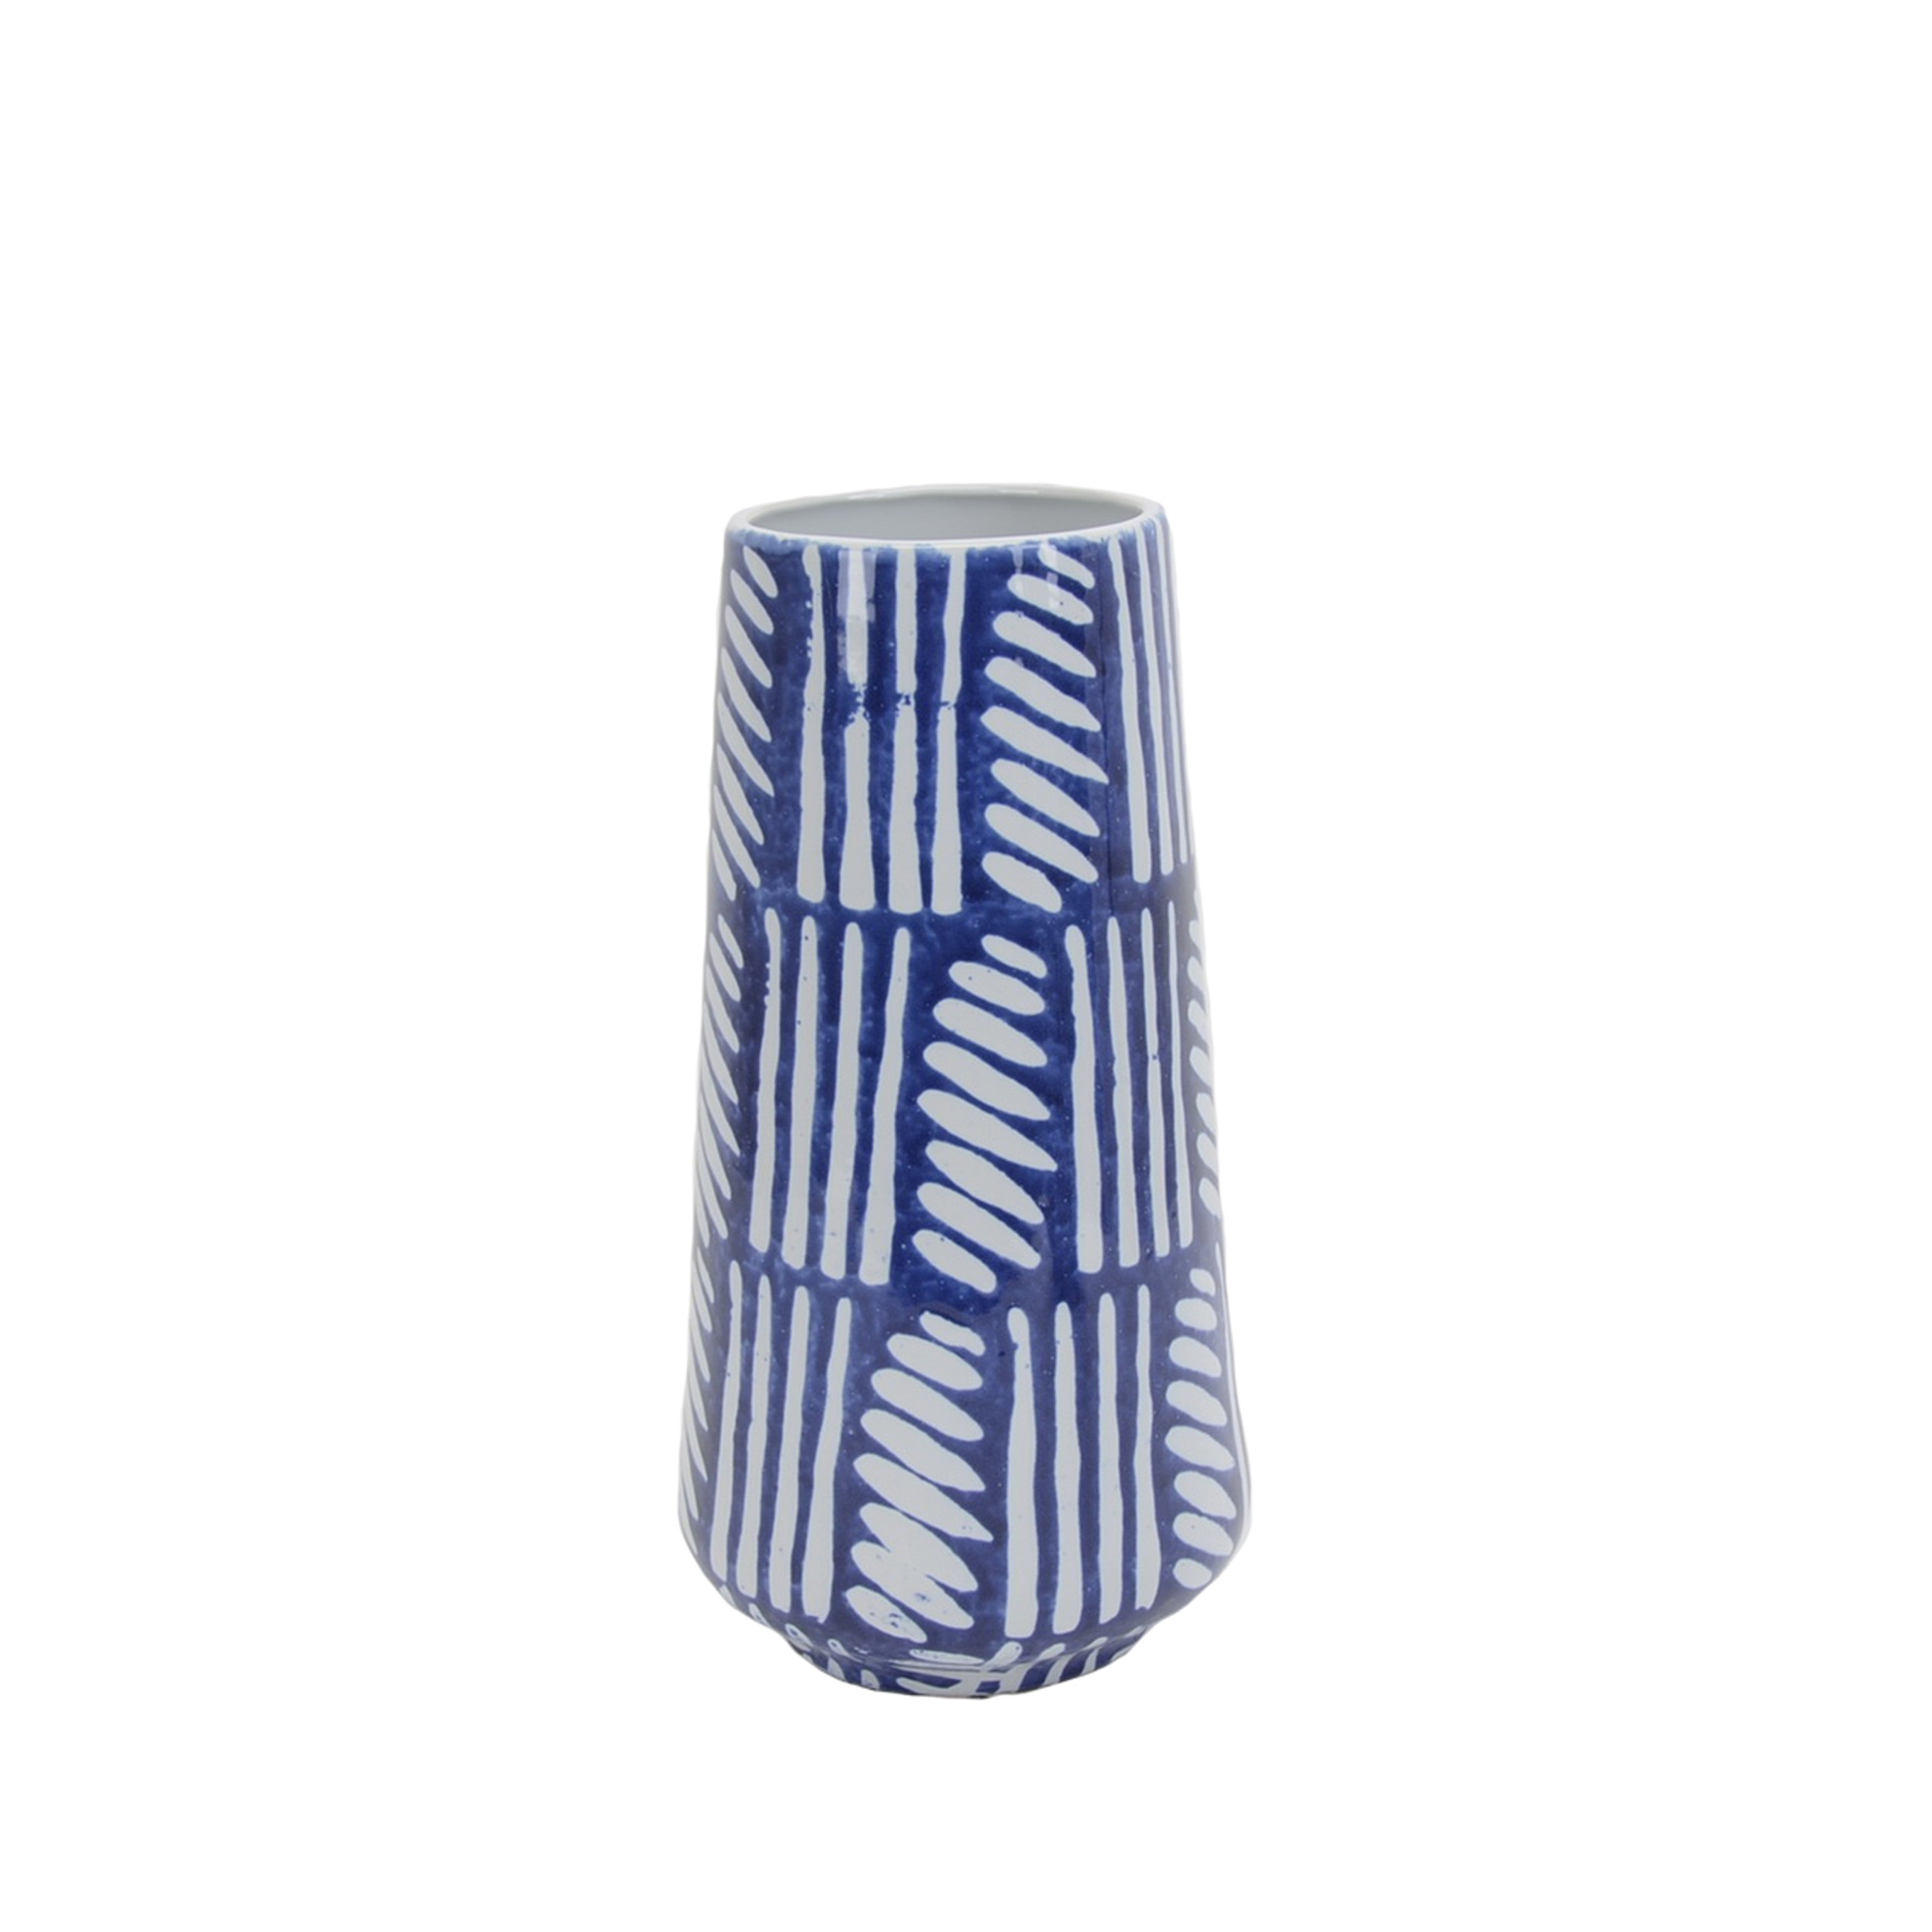 Textured Ceramic Vase with Tapered Round Base, Small, Blue and White